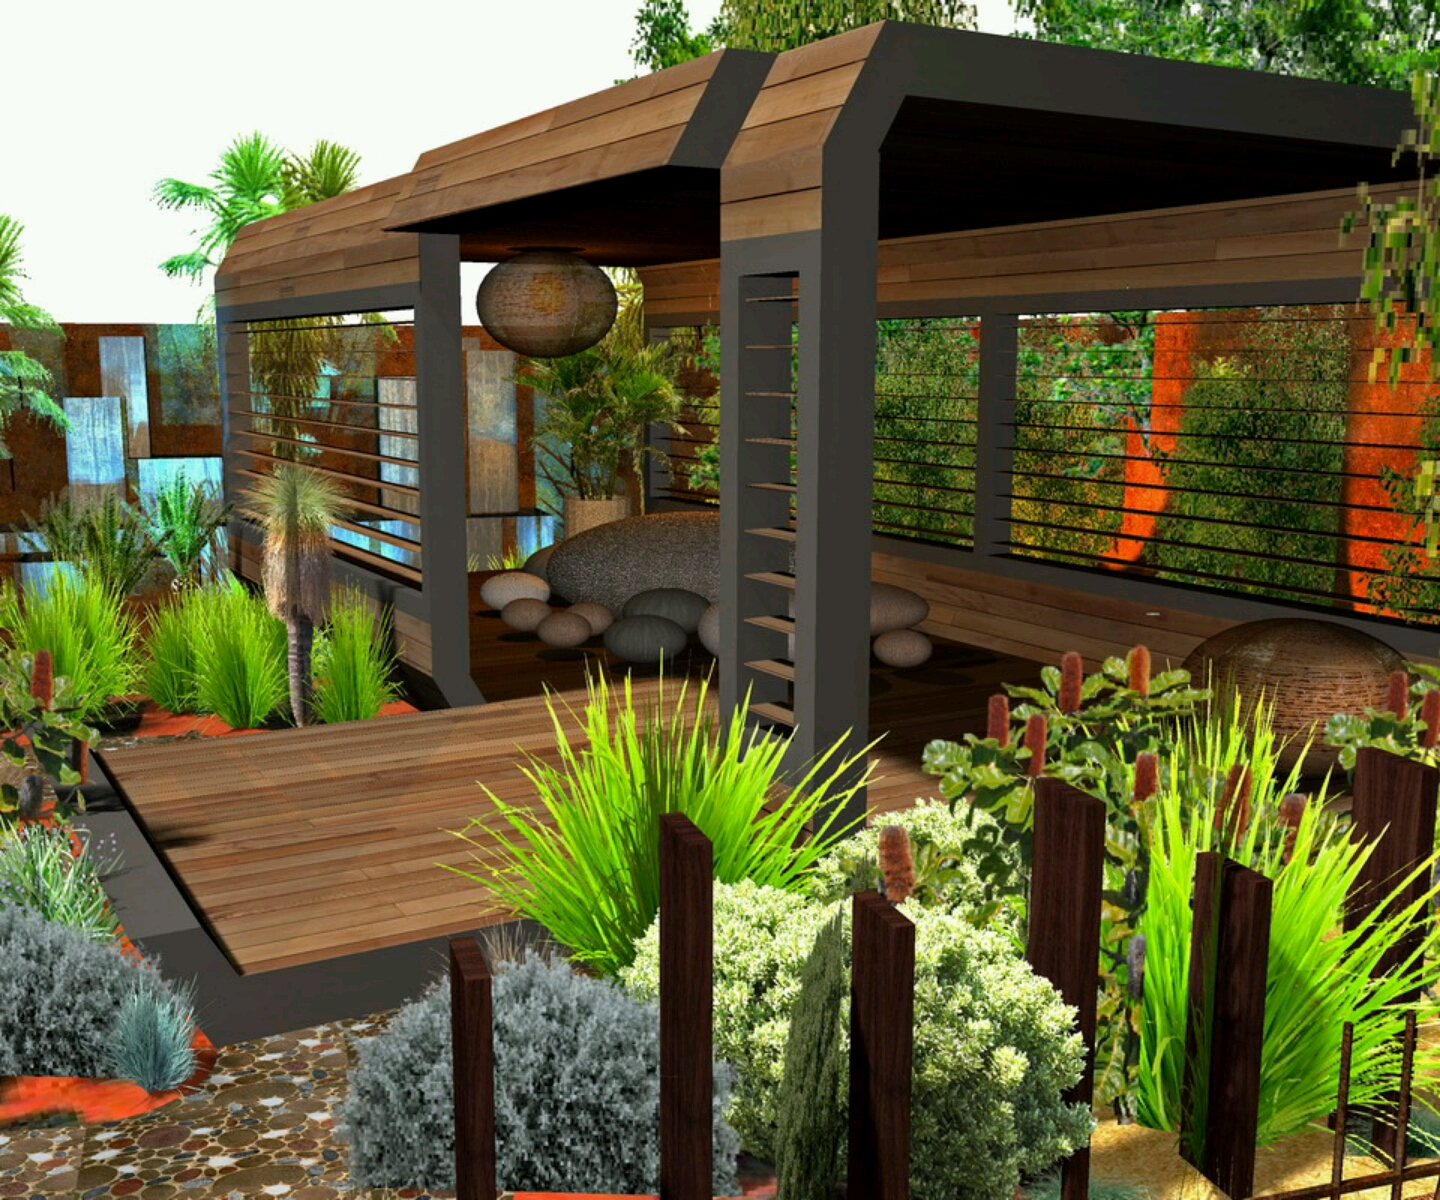 Home Design Backyard Ideas: Modern Homes Garden Designs Ideas.